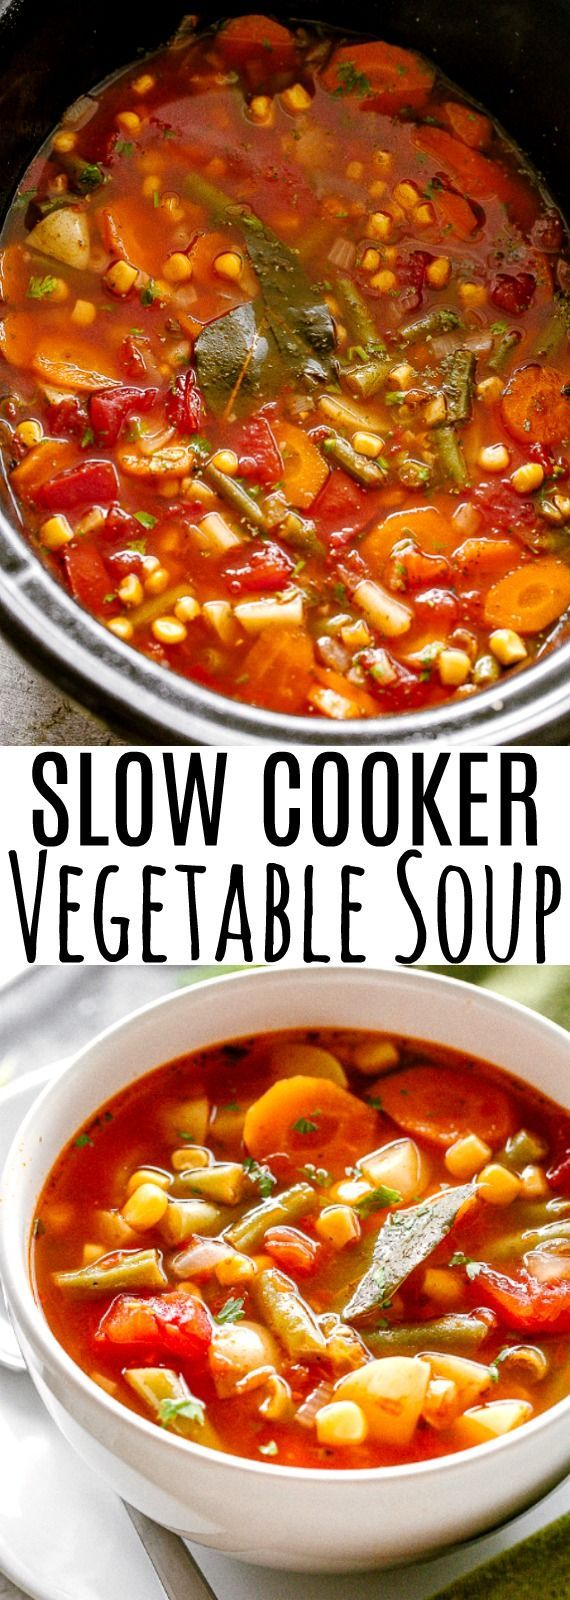 SLOW COOKER VEGETABLE SOUP HEALTHY AND HEARTY SLOW COOKER